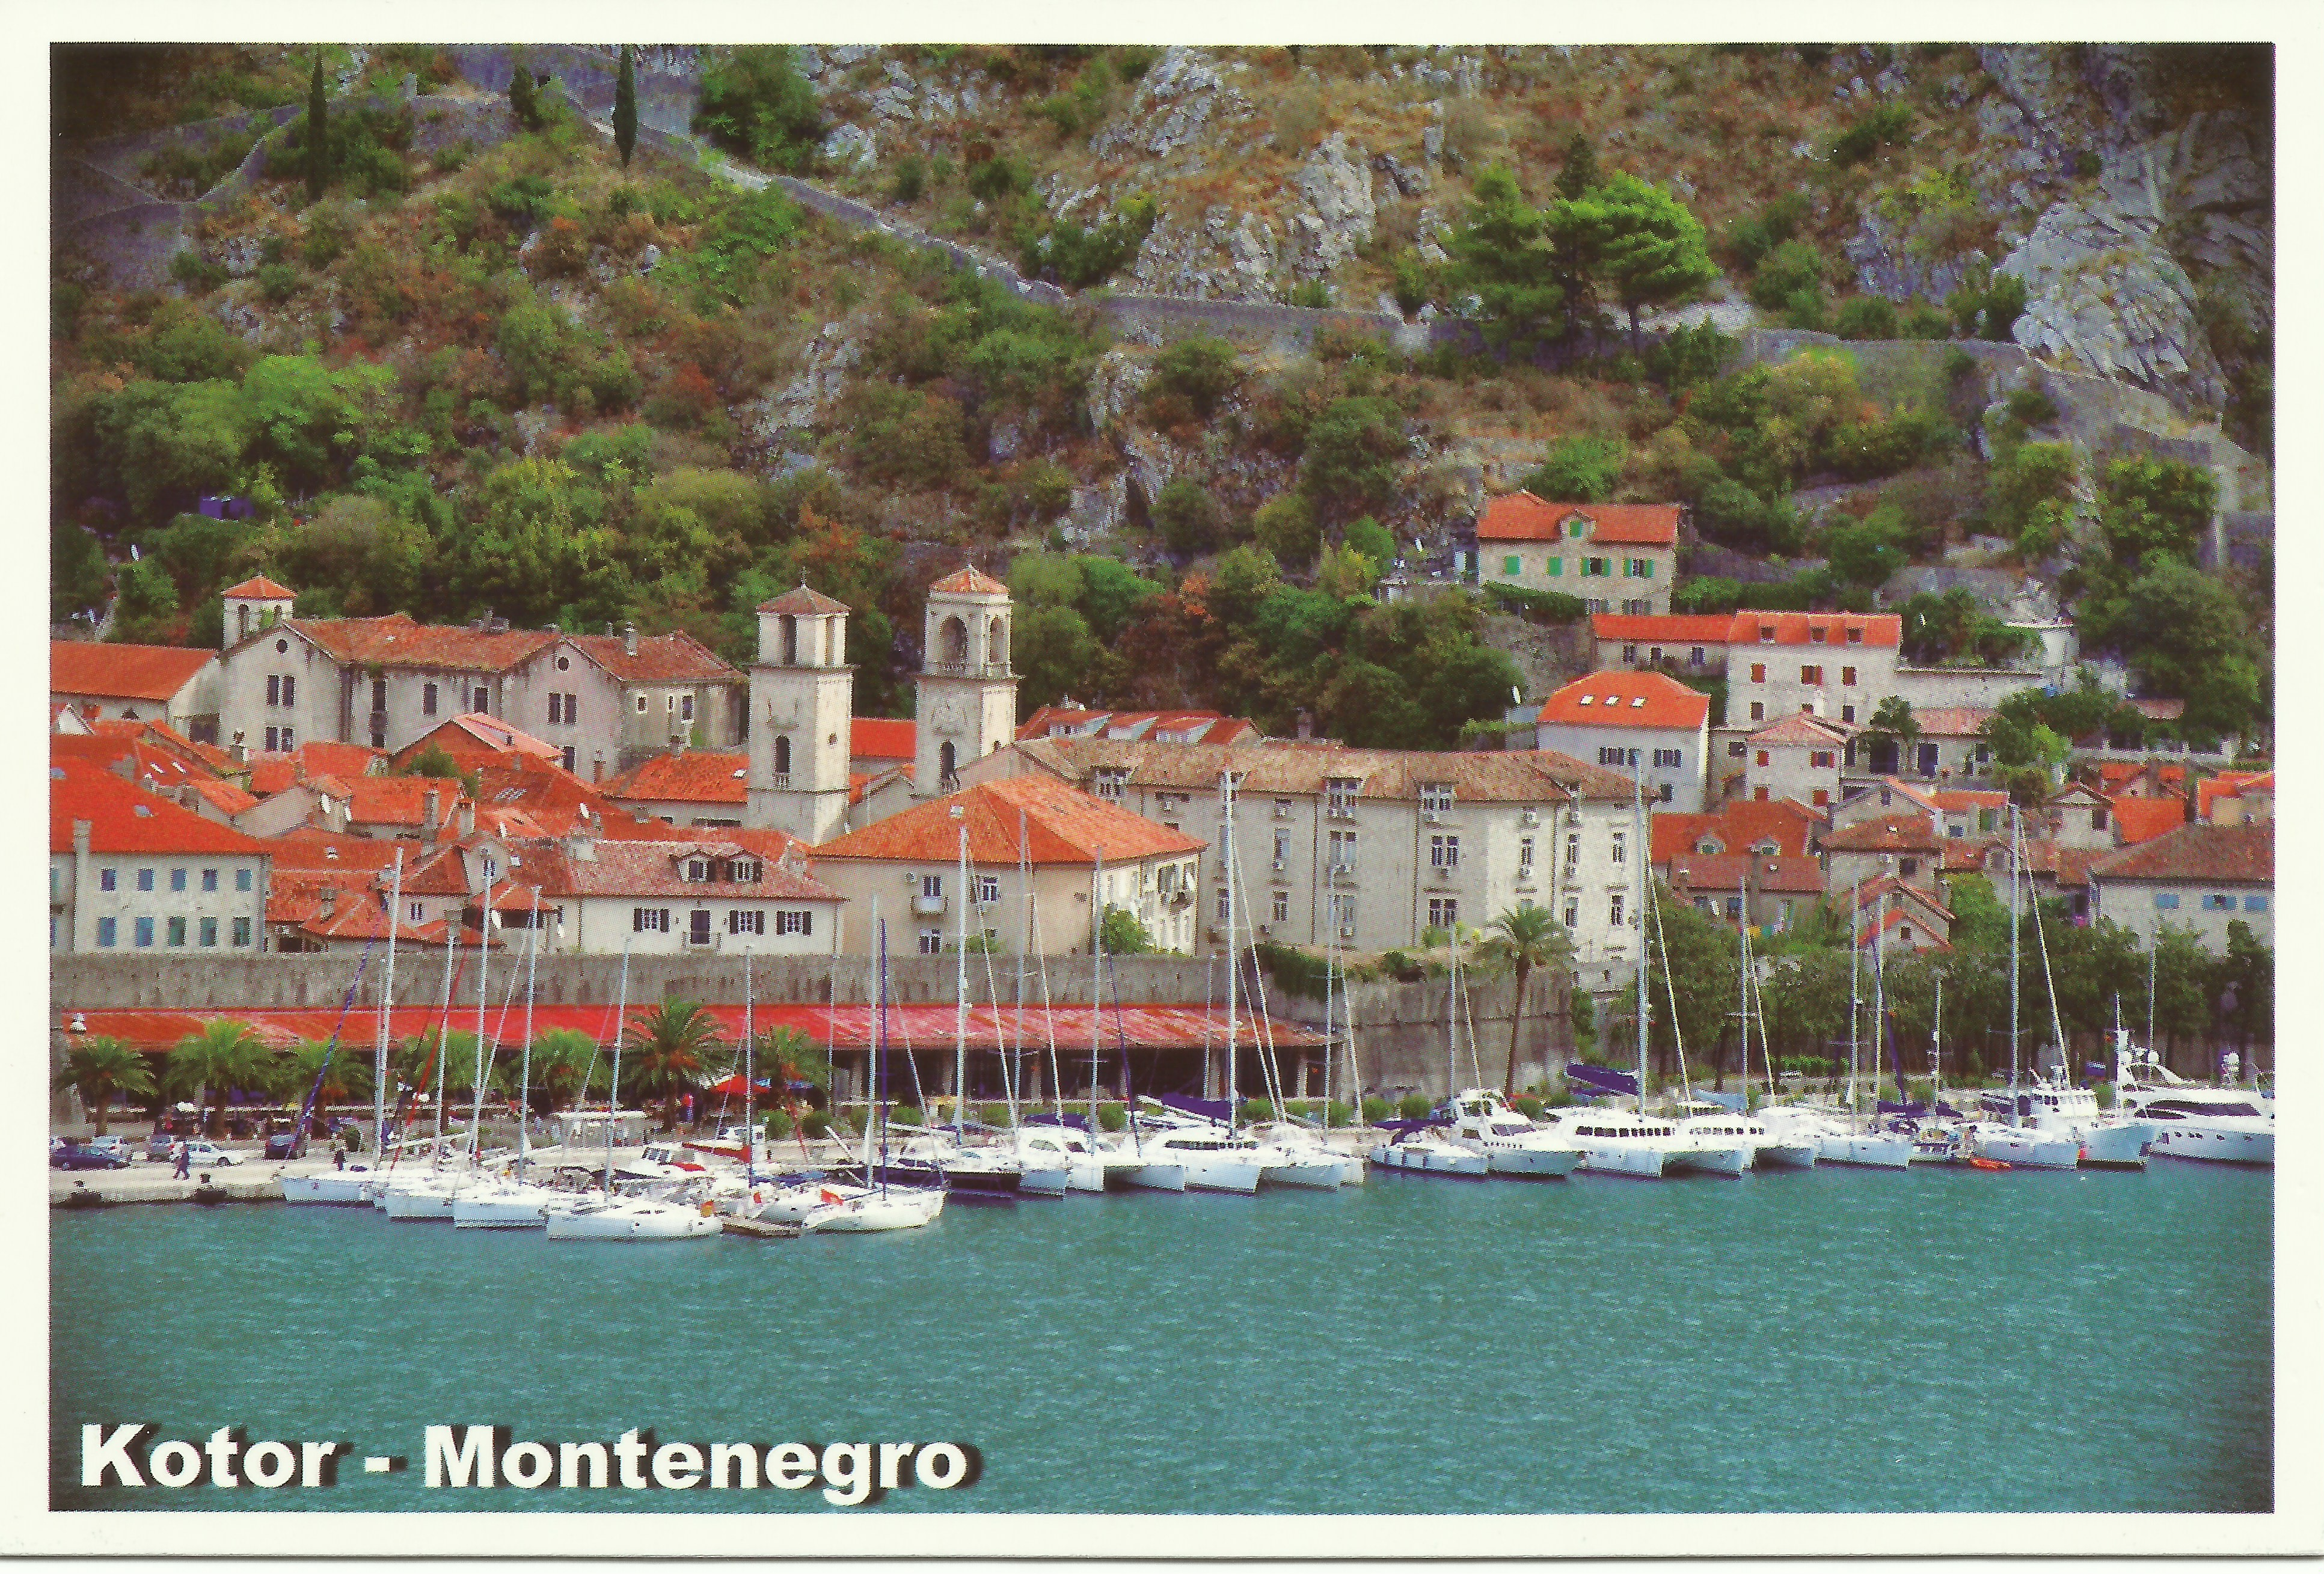 Postcard sent from Kotor, Montenegro, by my younger sister, Marilyn, in August 2013.